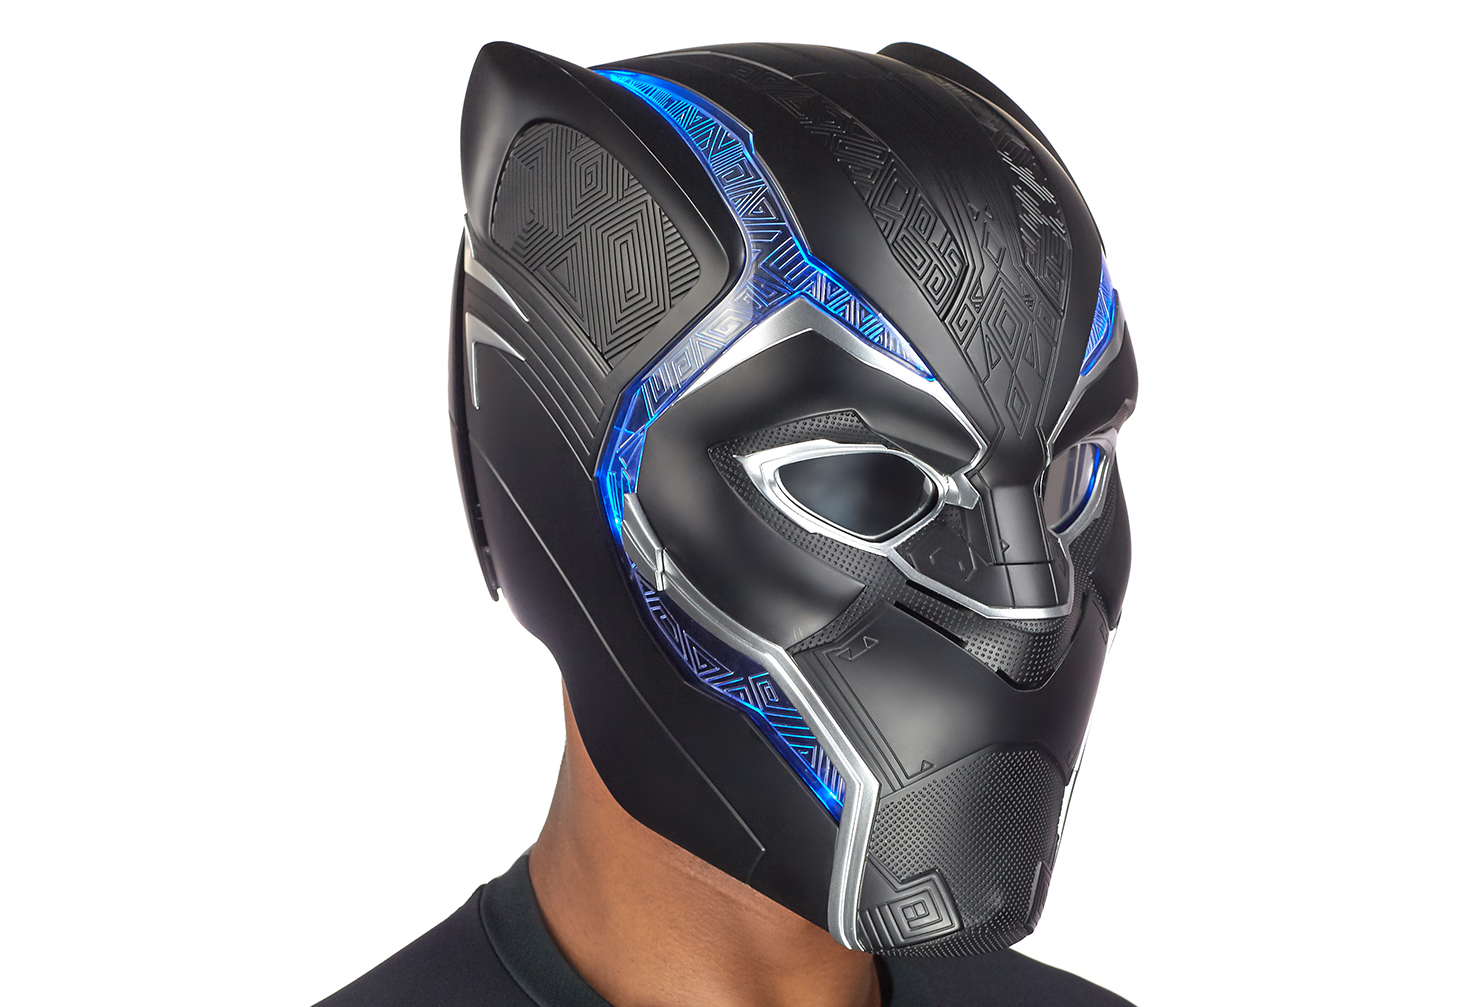 Hasbro: Black Panther Premium Role Play Helmet Revealed